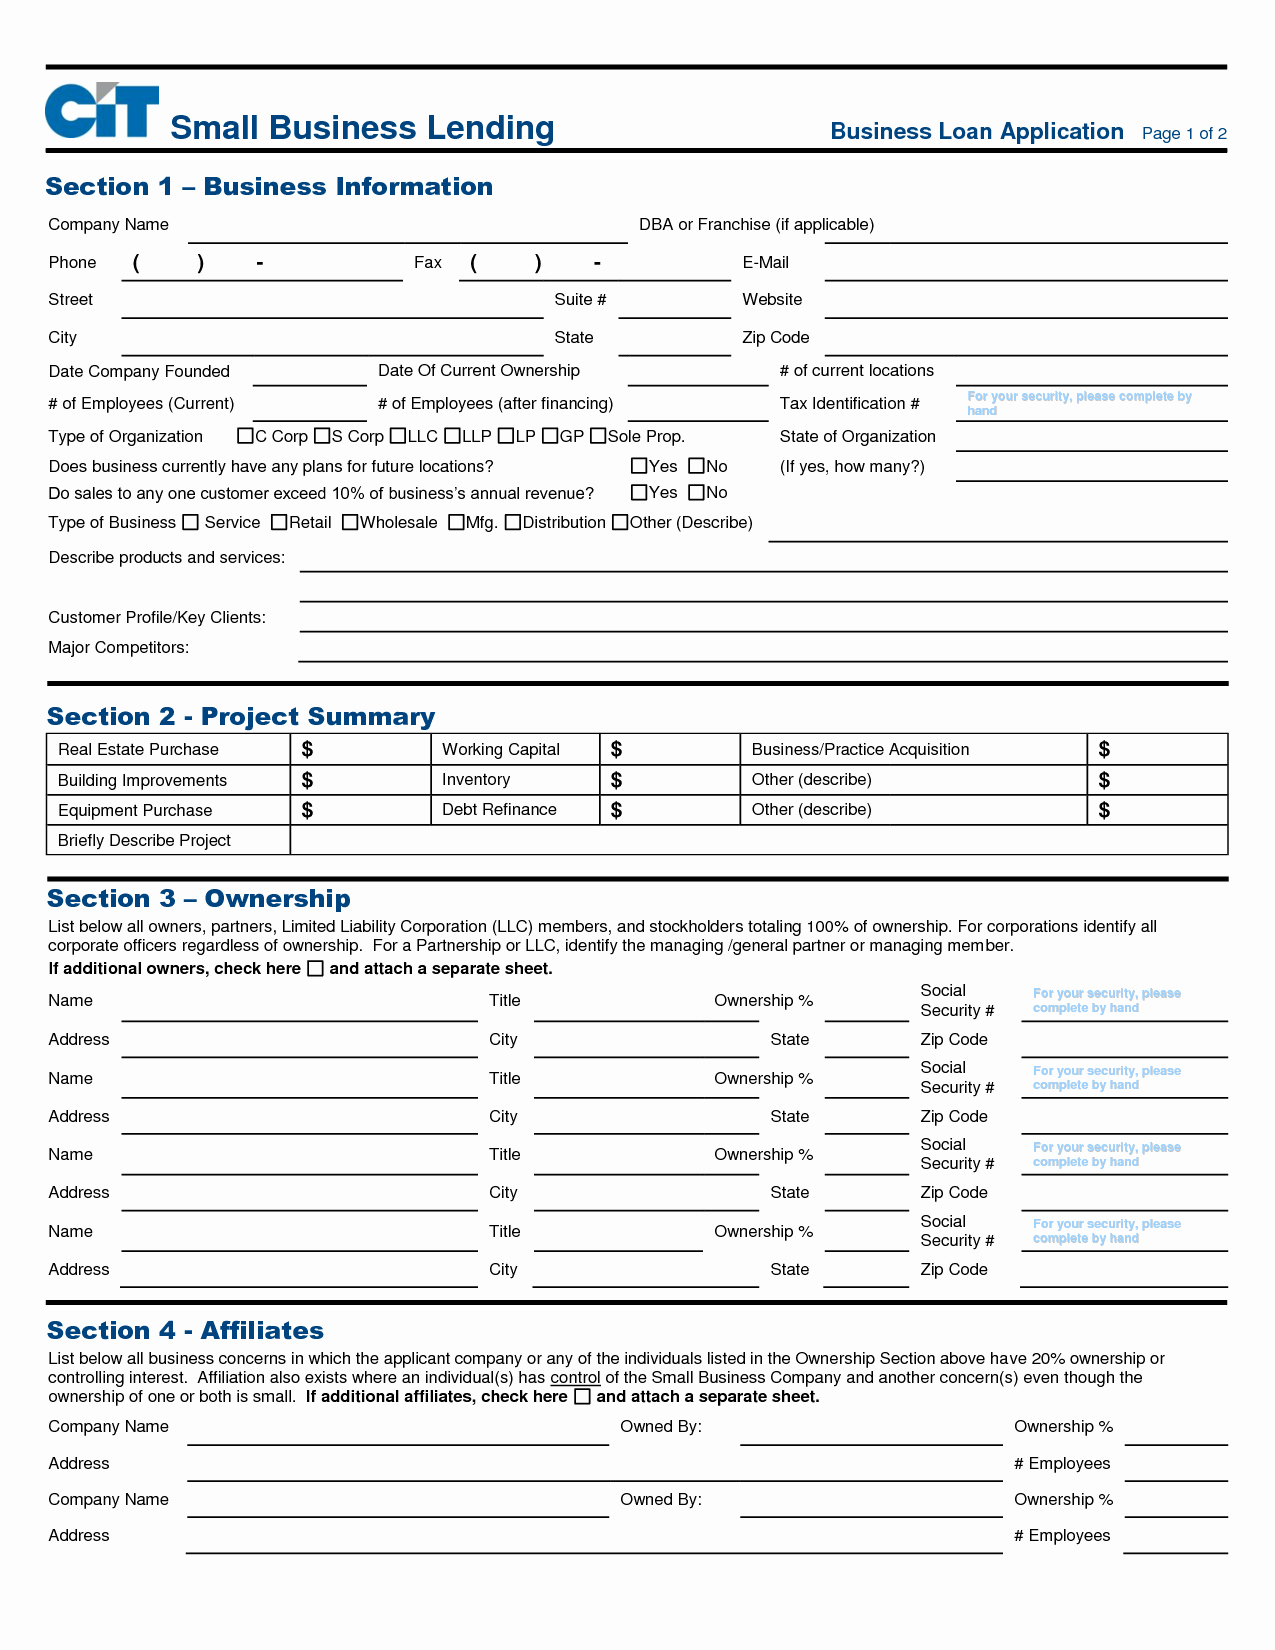 Business Loan Application Template Luxury Business Loan Application form Sample